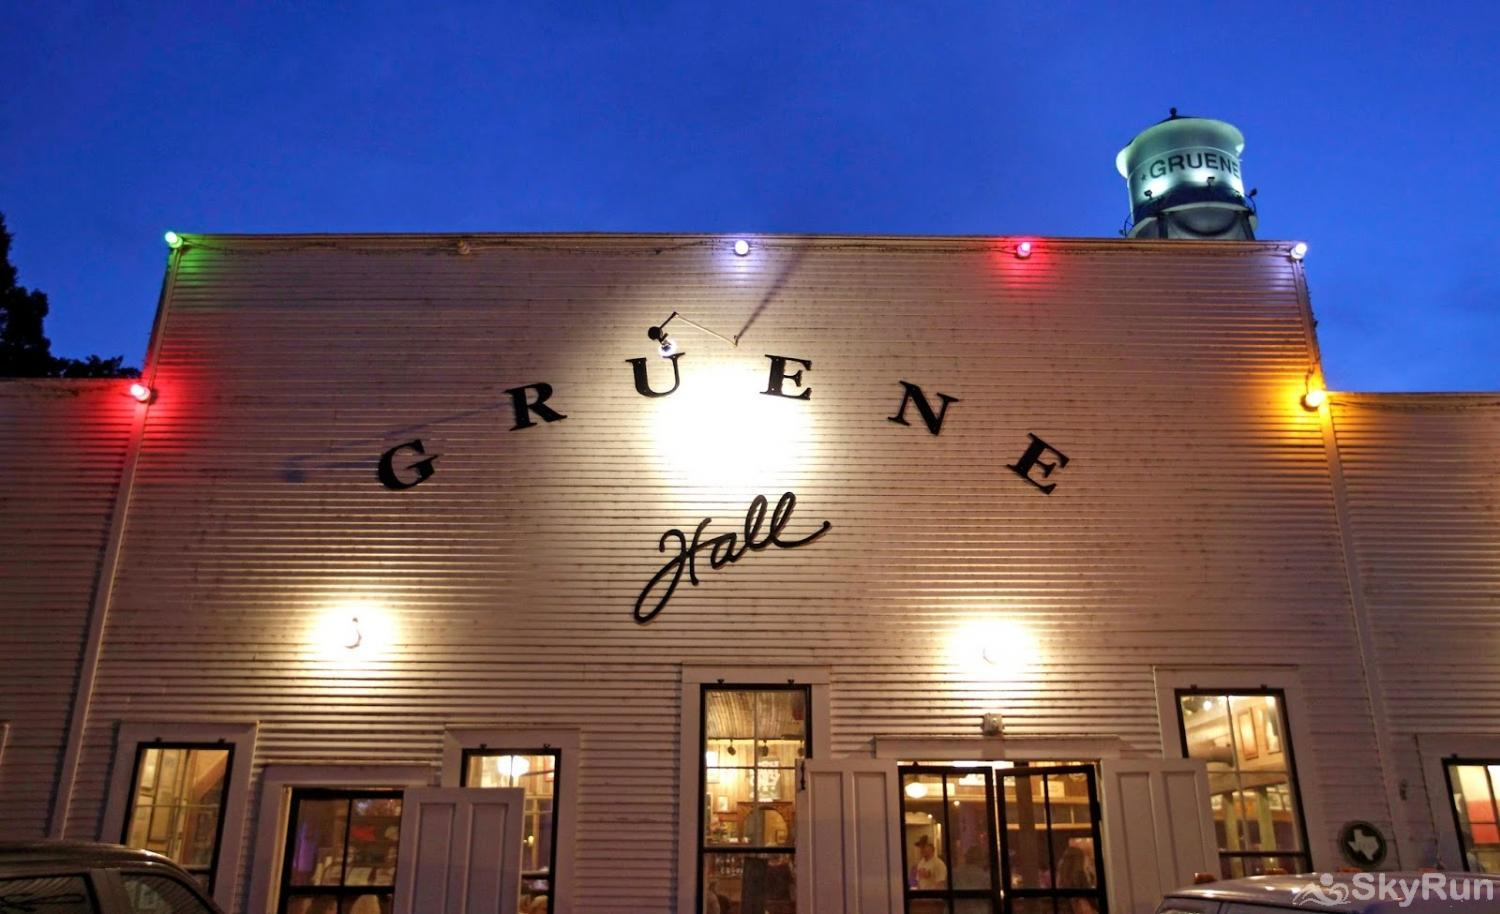 TEXAS ROSE LODGE Gruene Hall in nearby New Braunfels